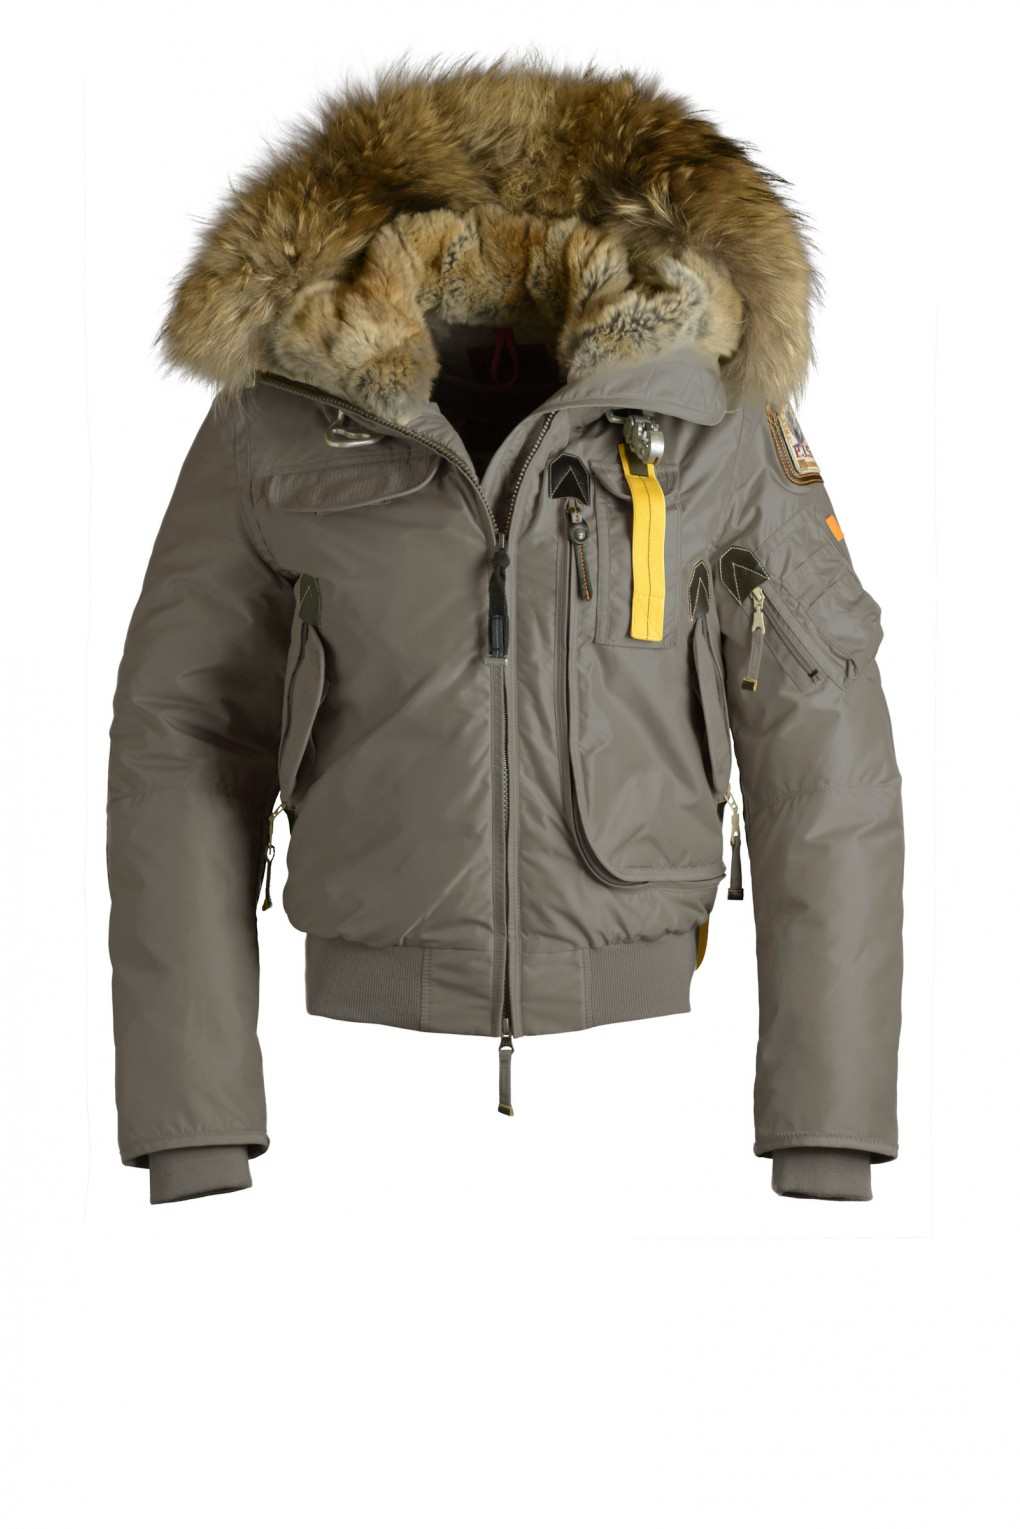 parajumpers GOBI woman outerwear Sage